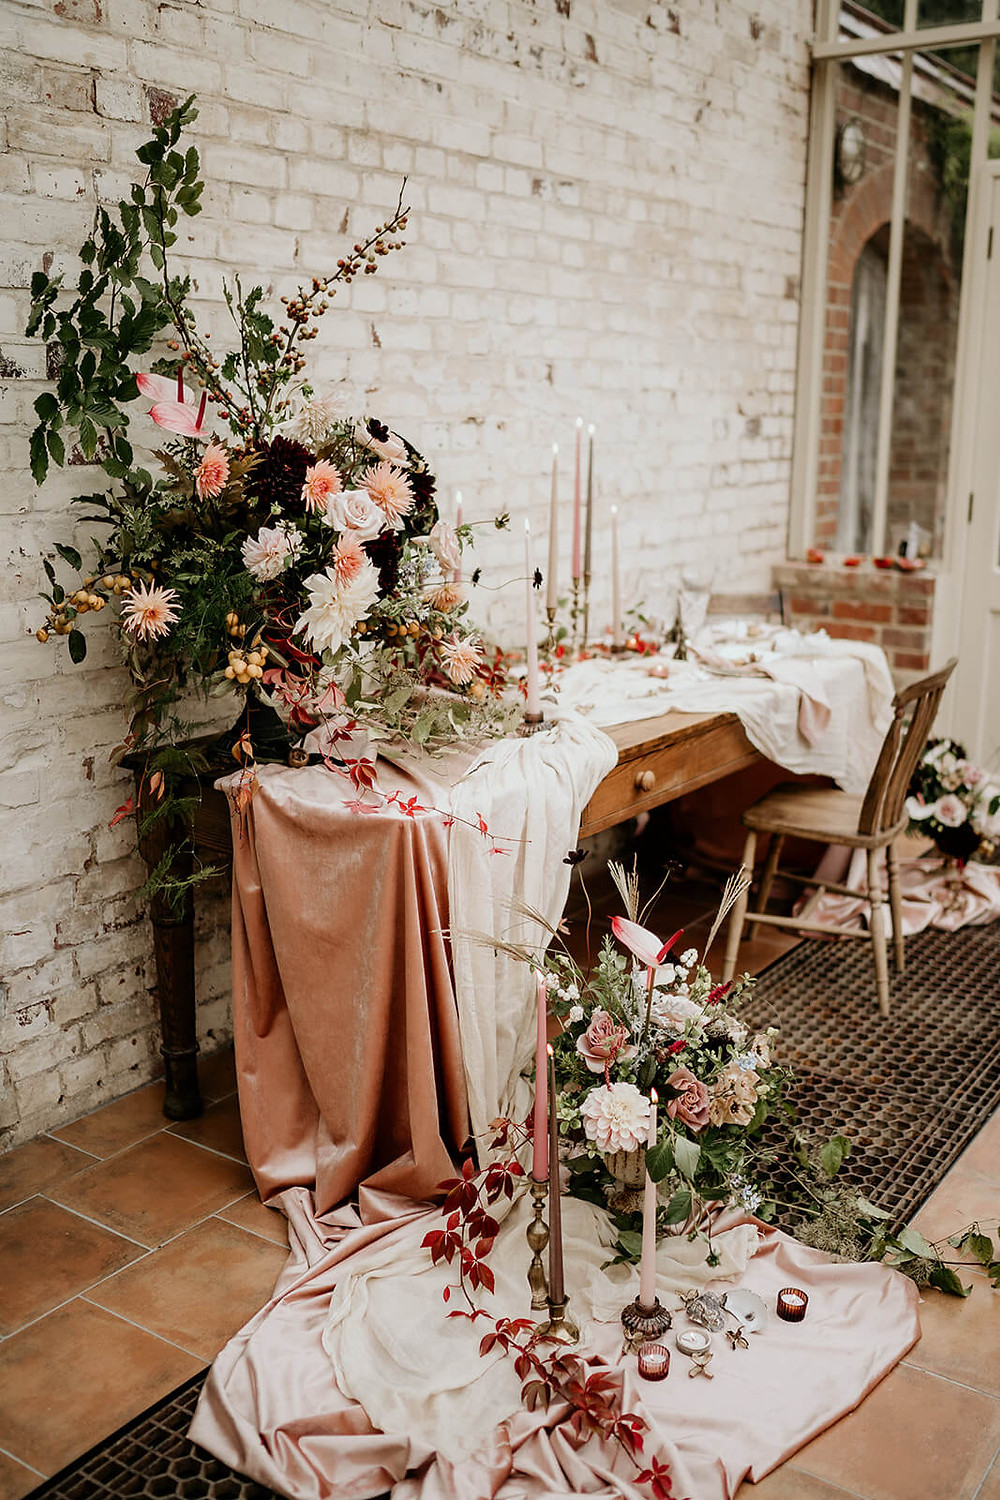 Styled wedding breakfast table with muted autumnal colours